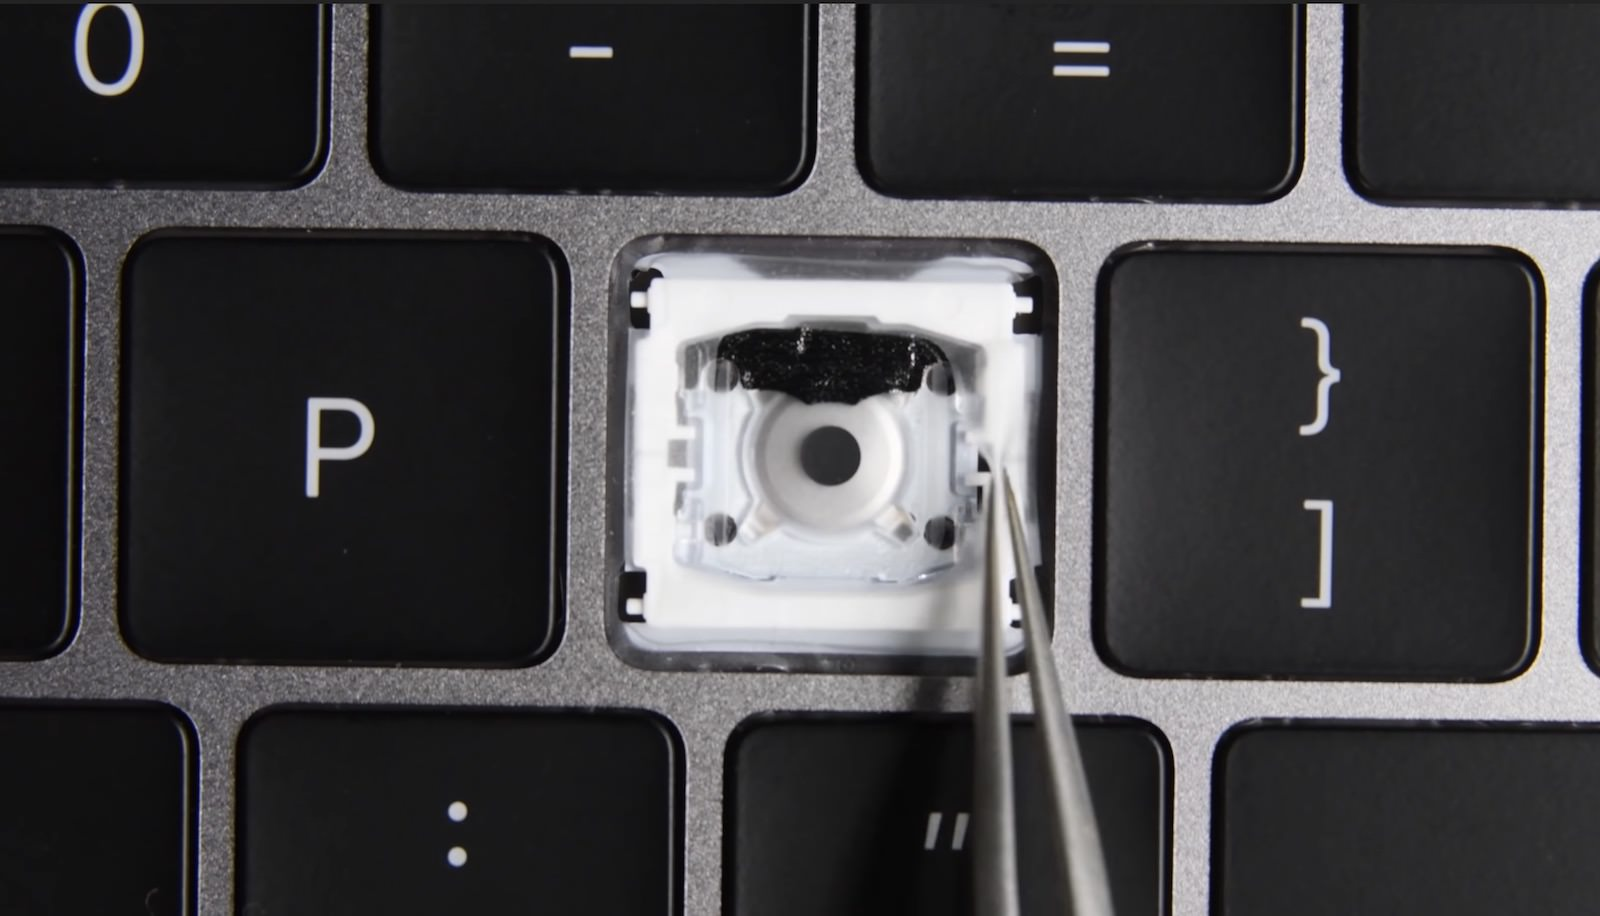 Protection around keys of MacBookPro2018